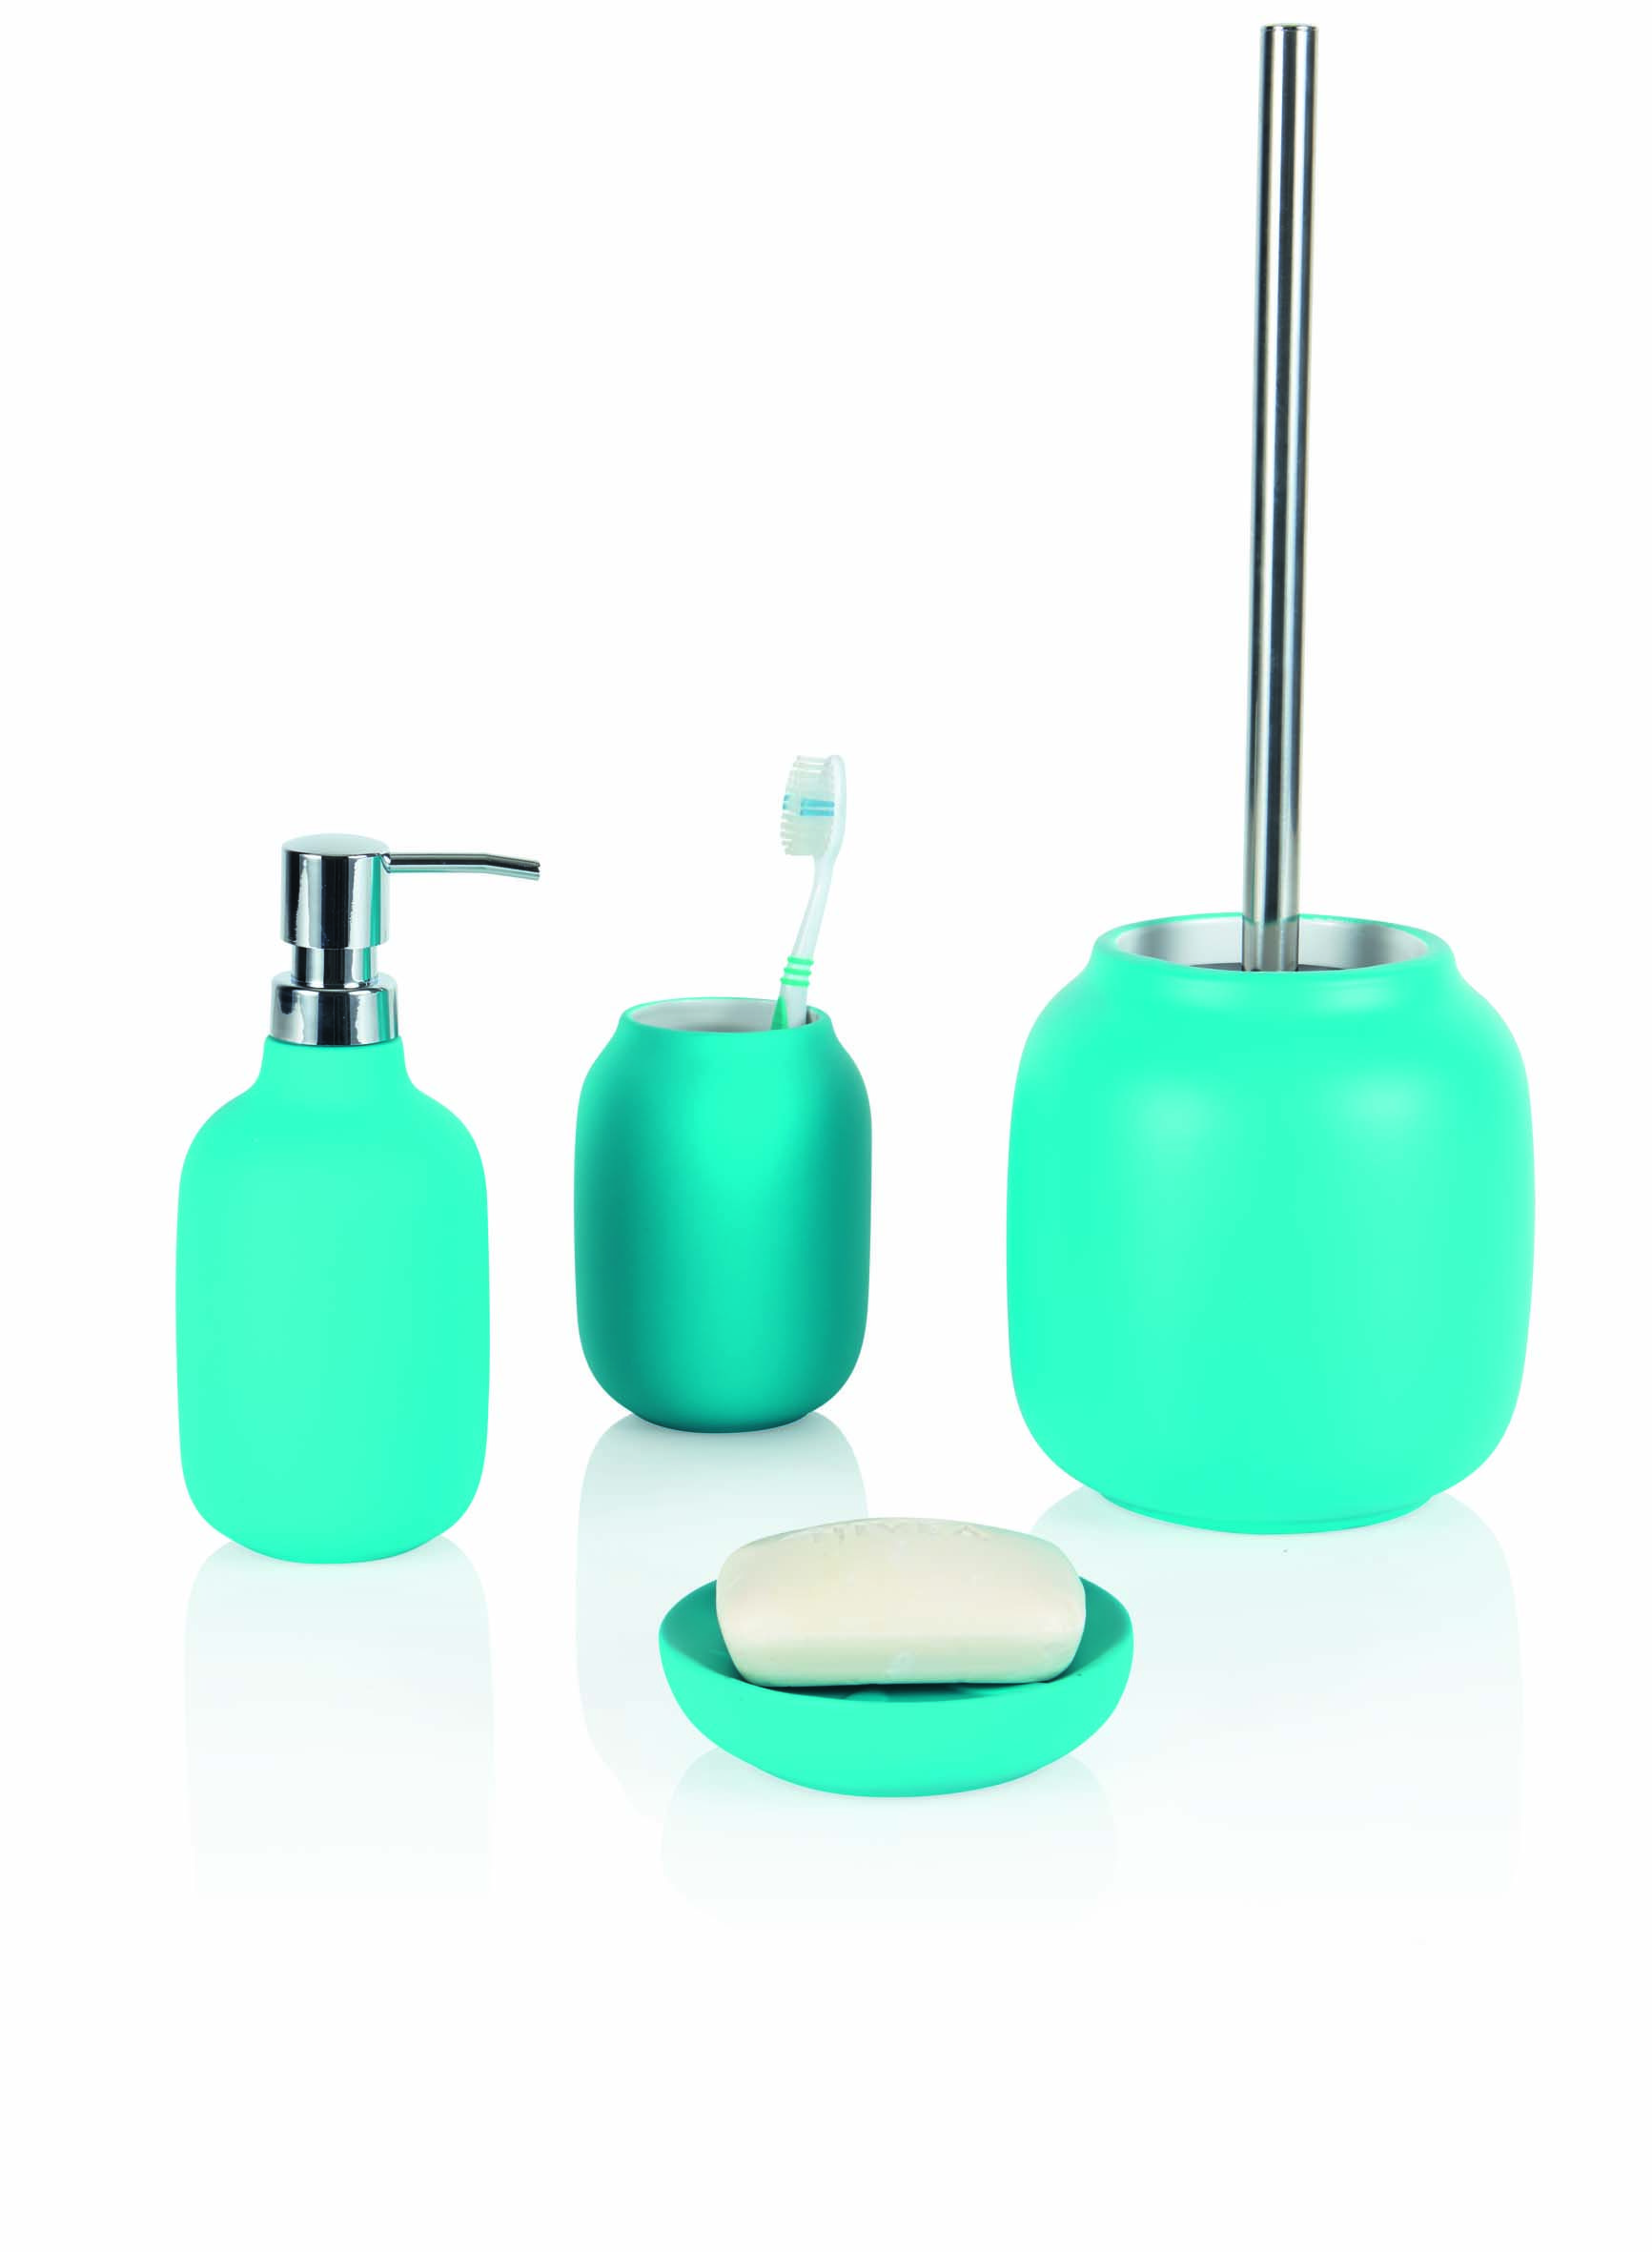 Howards Ceramic Bathroom Accessories, rubber coated, soft touch ...